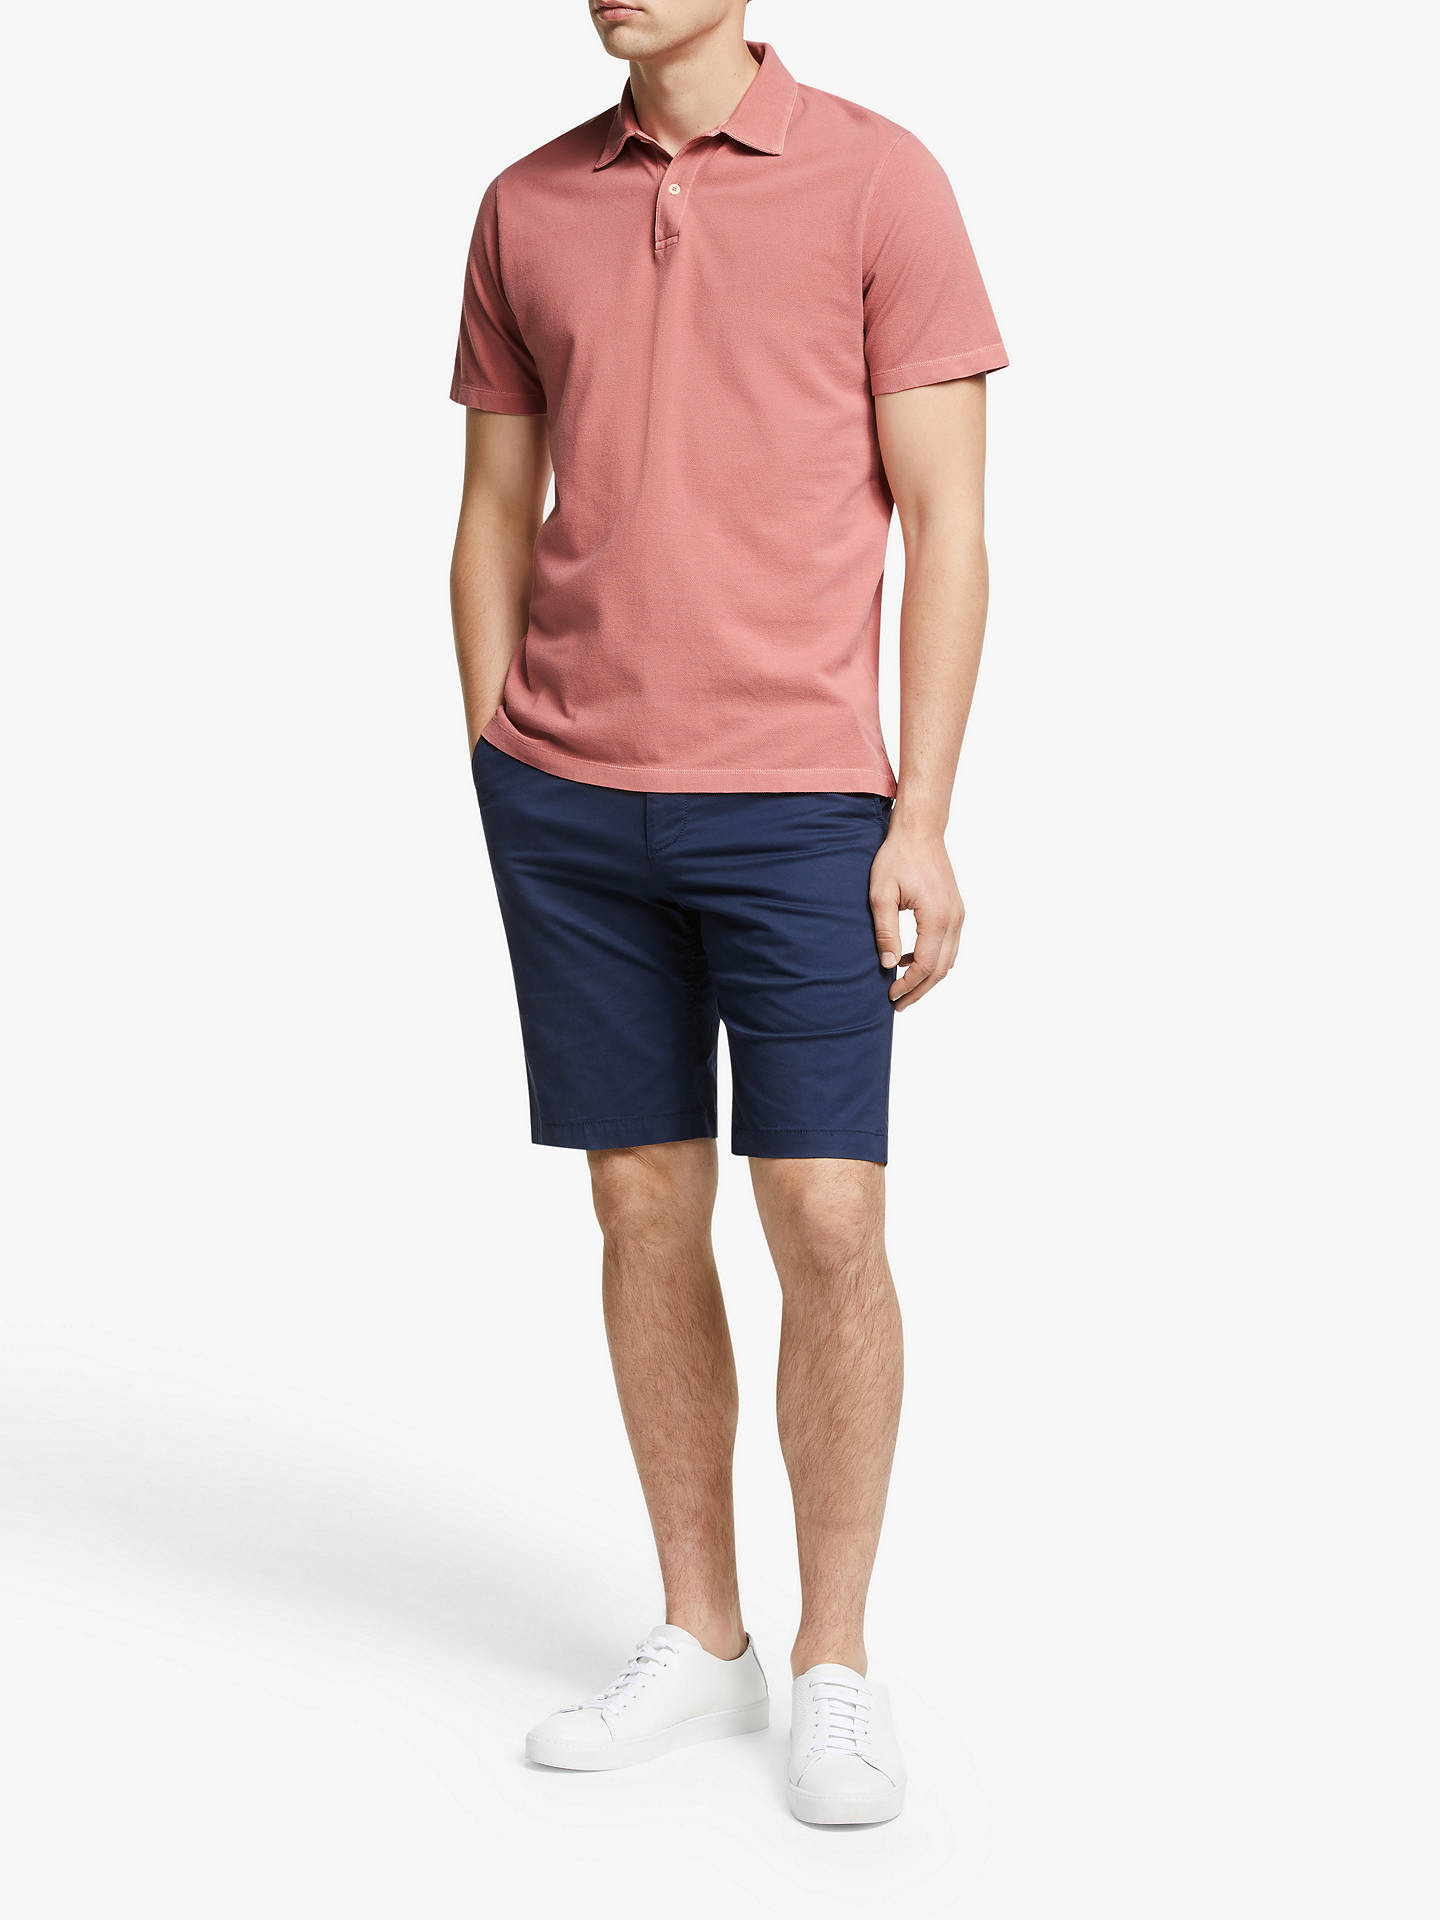 Nike Tennis Men's Polo Shirt As Effectively As A Fairy Does Activewear